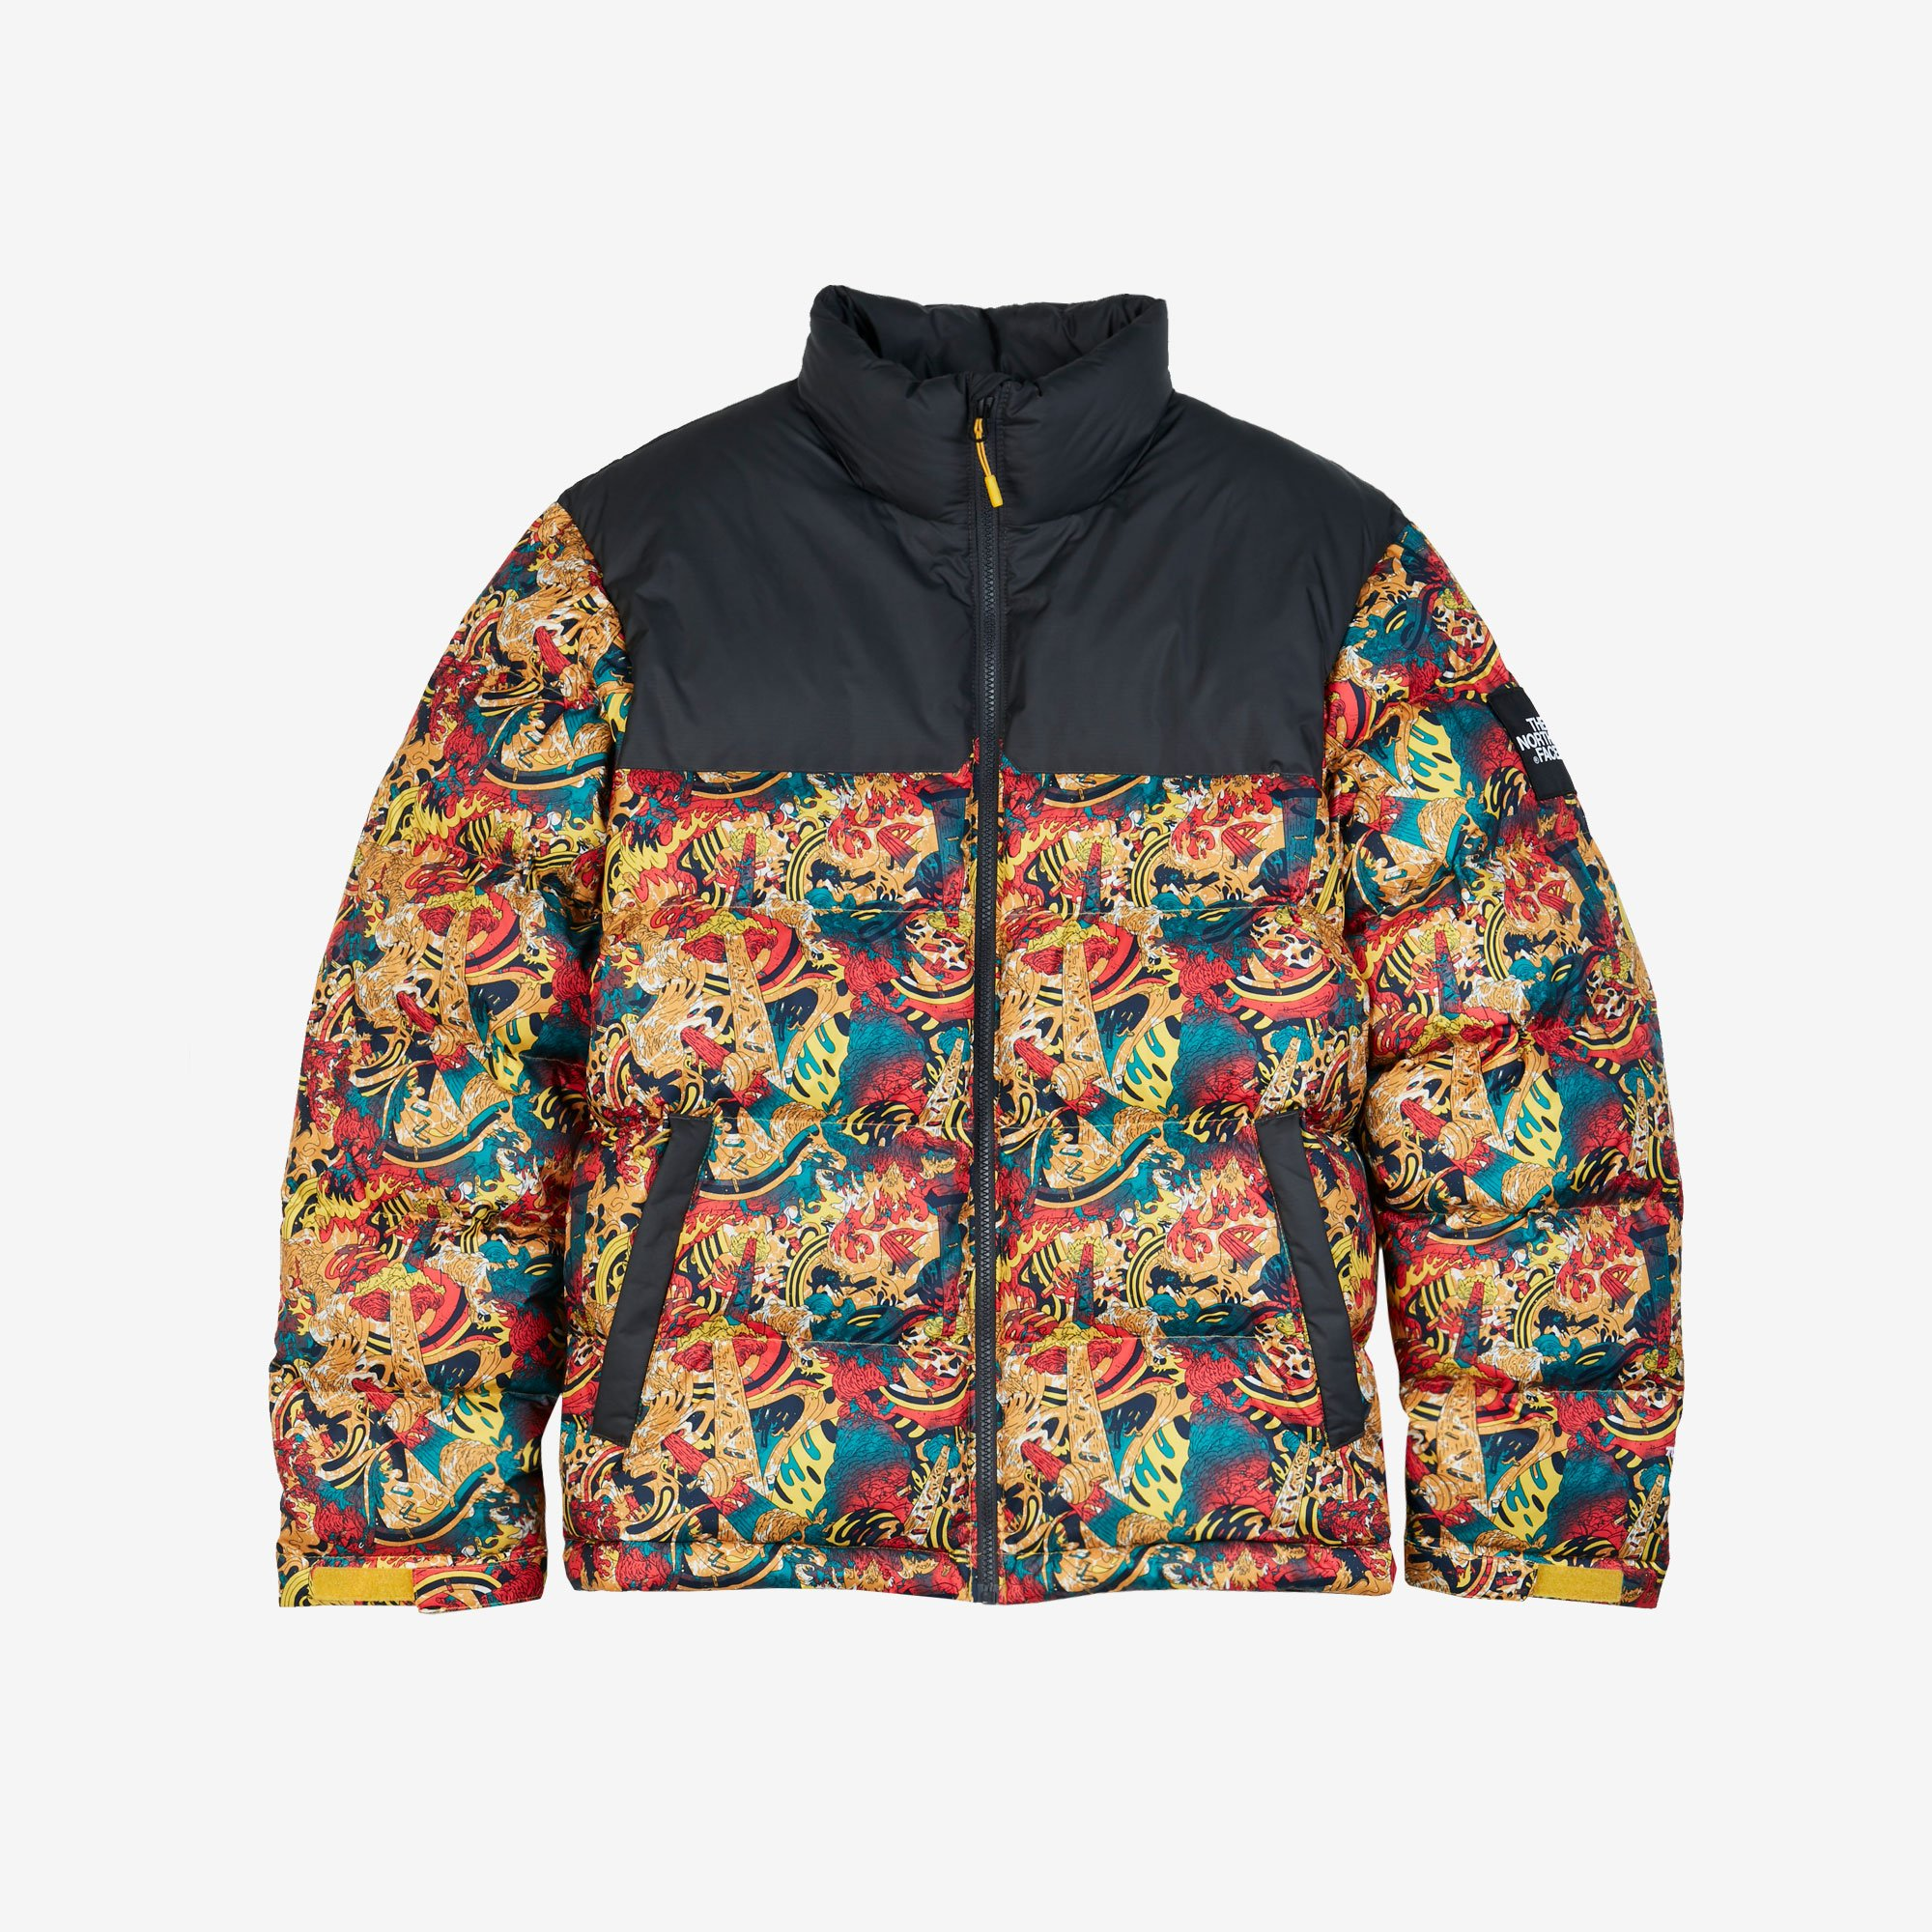 cemento Asso Confessione  The North Face M 1992 Nuptse Jacket - T92zwe9xp - Sneakersnstuff | sneakers  & streetwear online since 1999